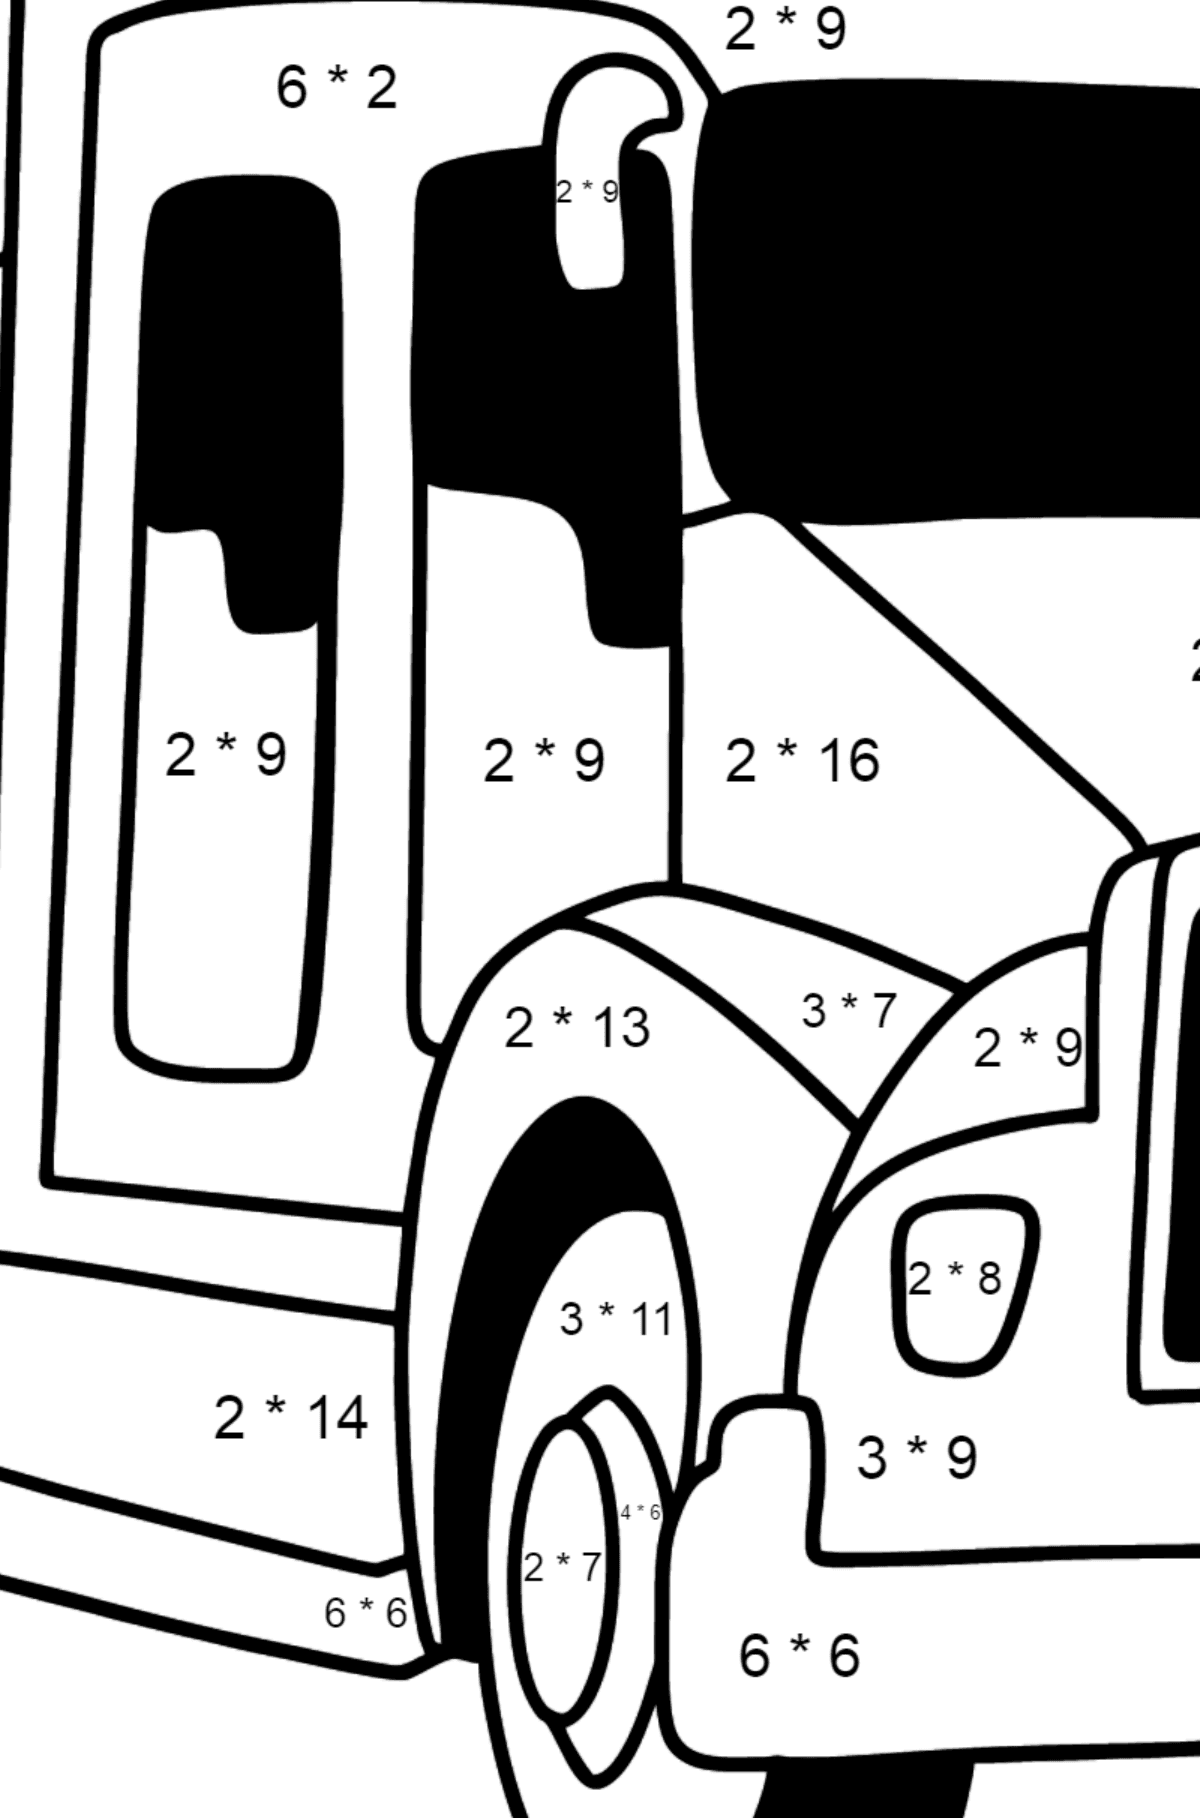 USA Fire Truck coloring page - Math Coloring - Multiplication for Kids